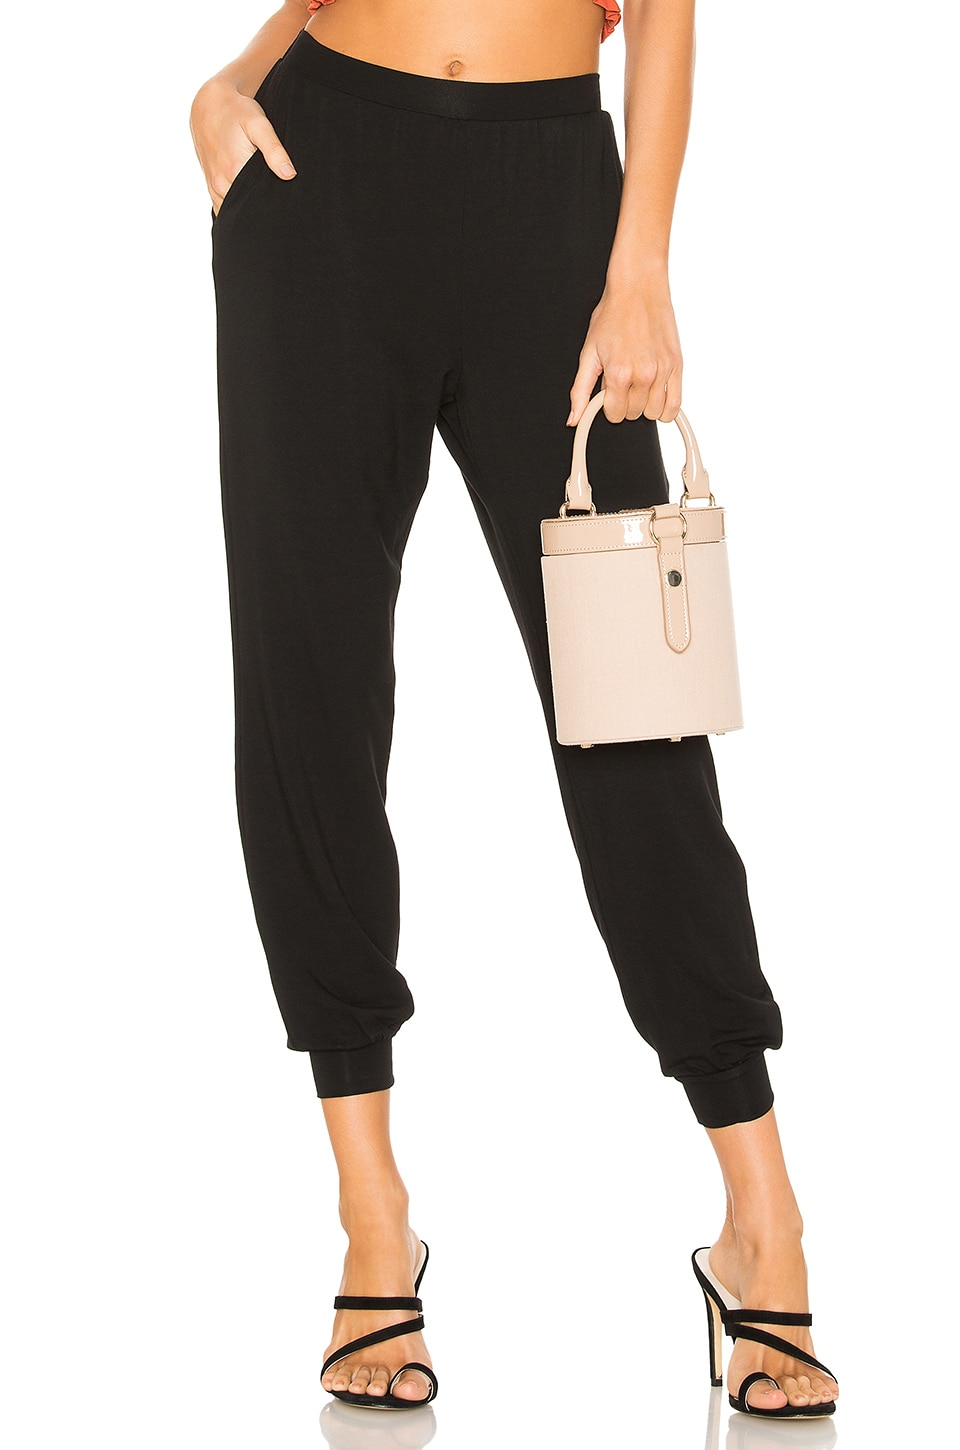 Tularosa Kamerson Pants in Black